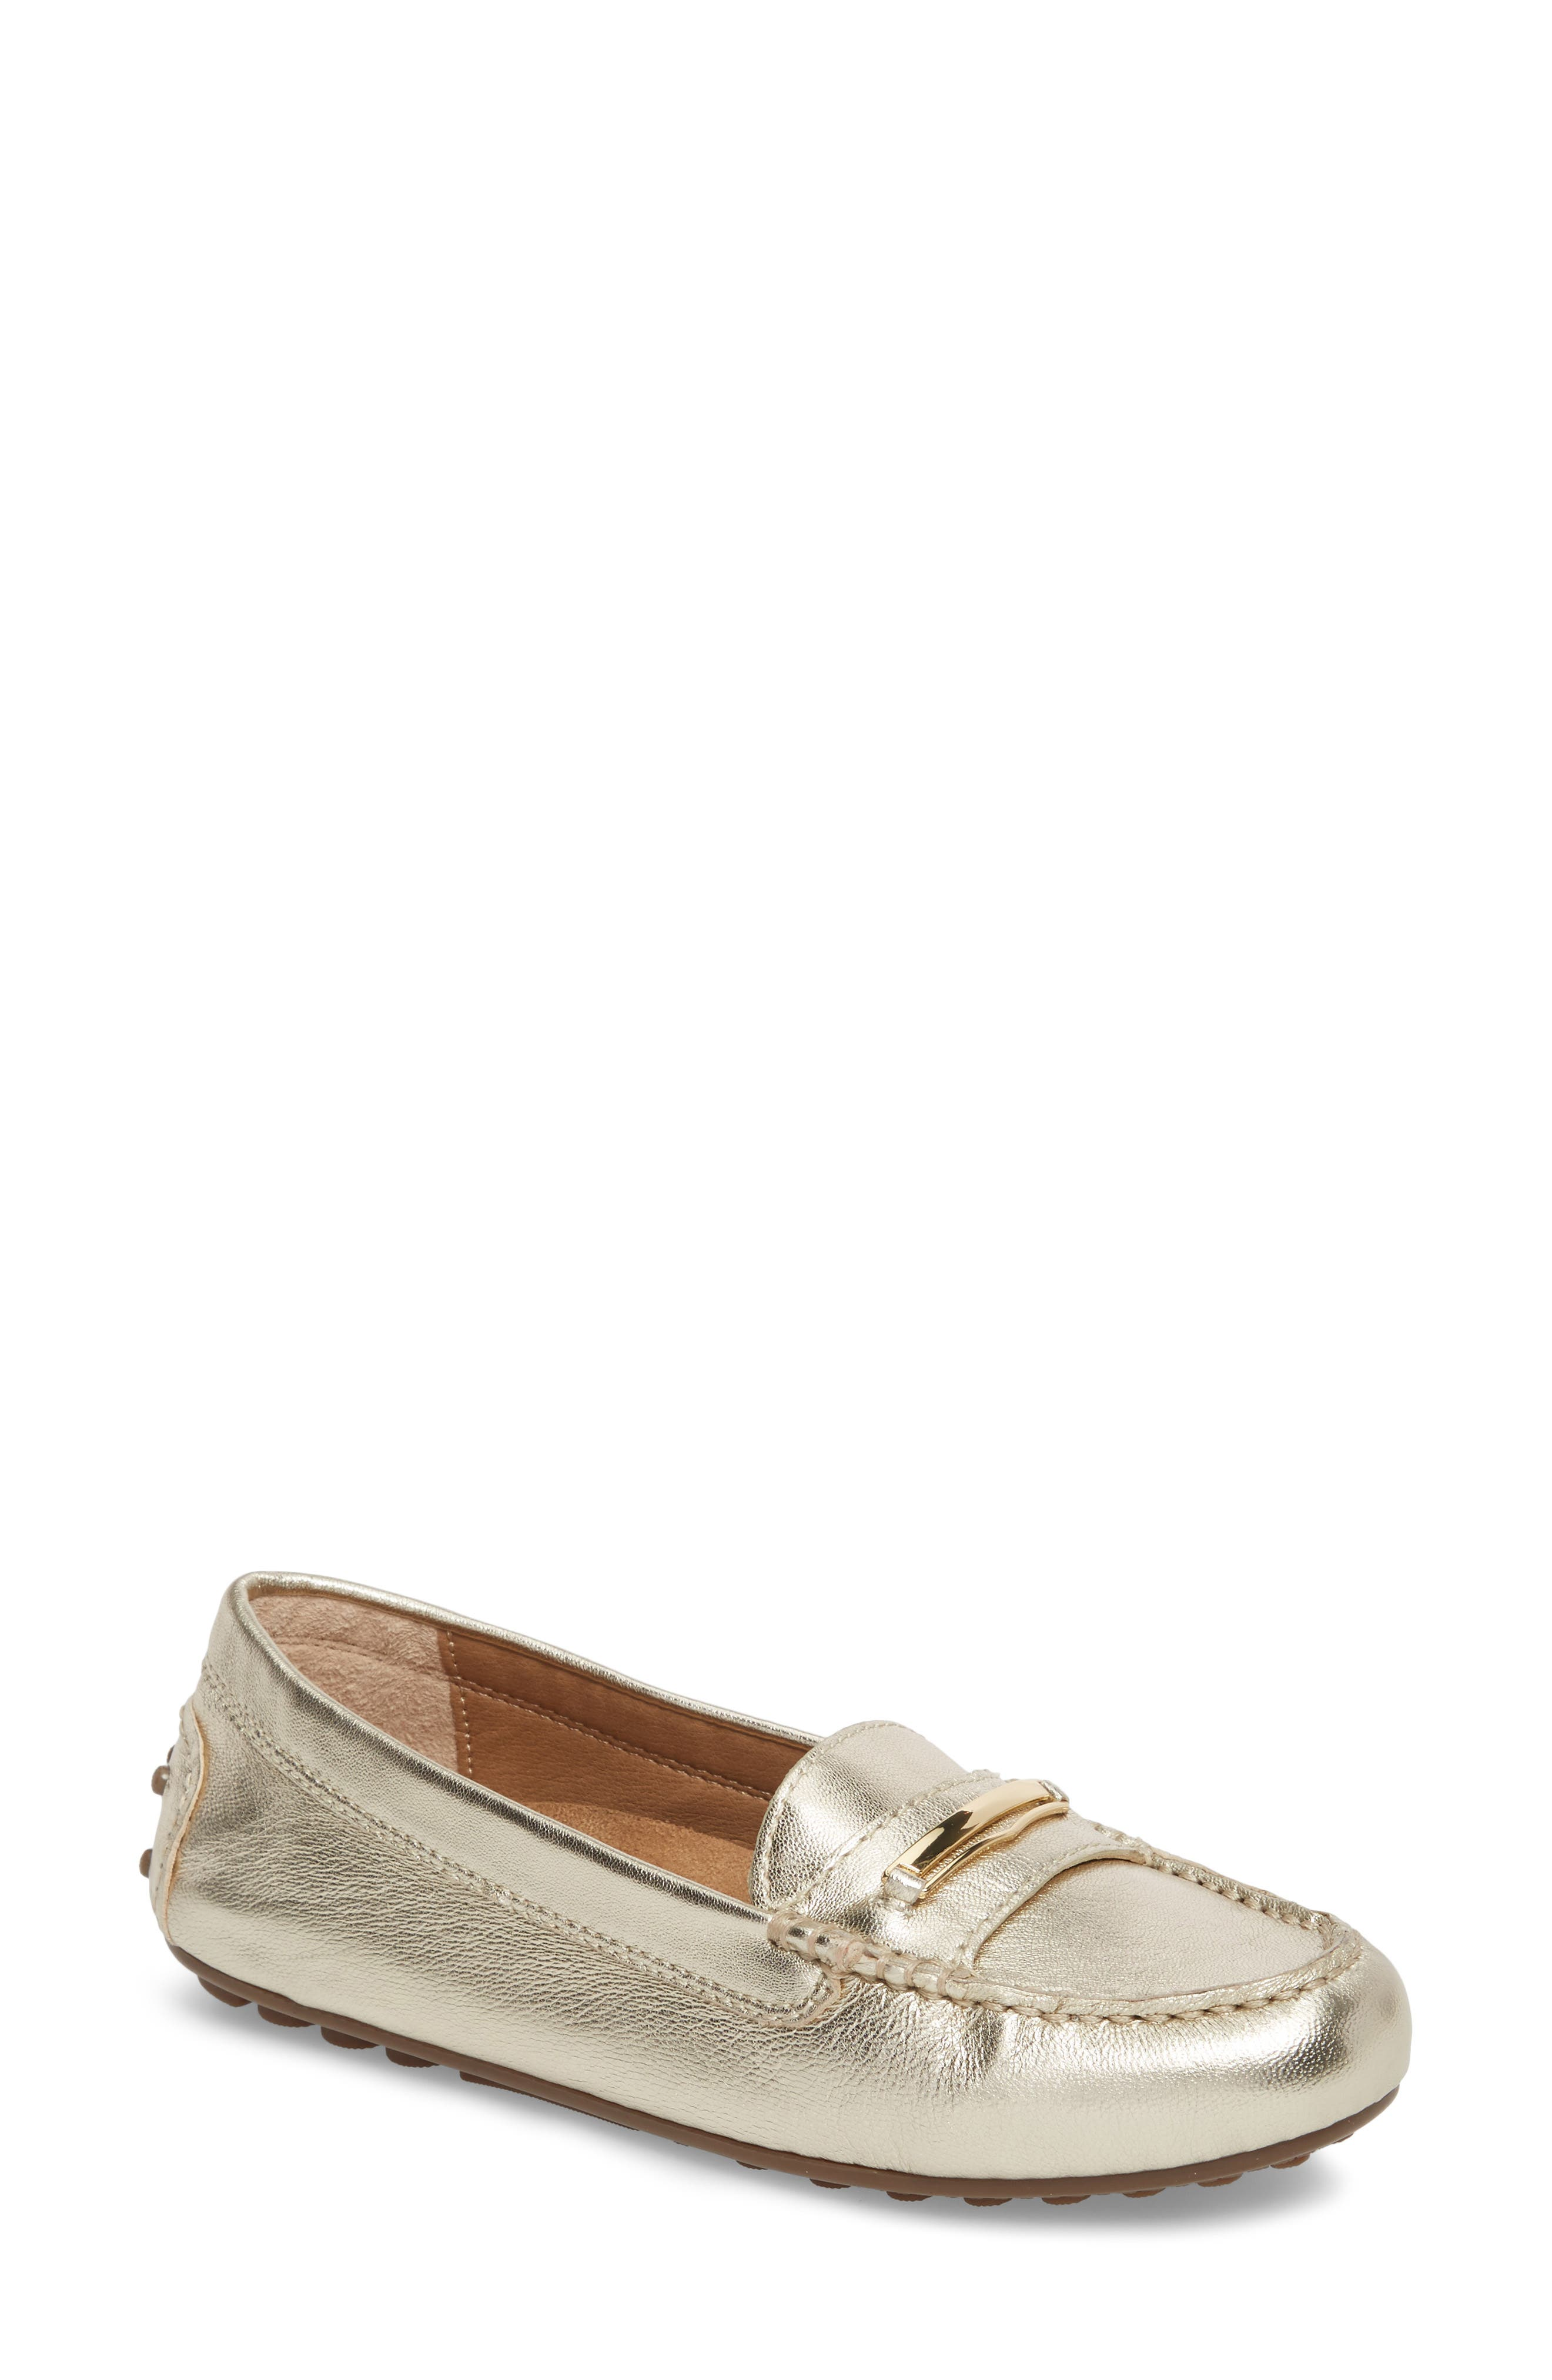 Ashby Loafer Flat,                             Main thumbnail 1, color,                             272